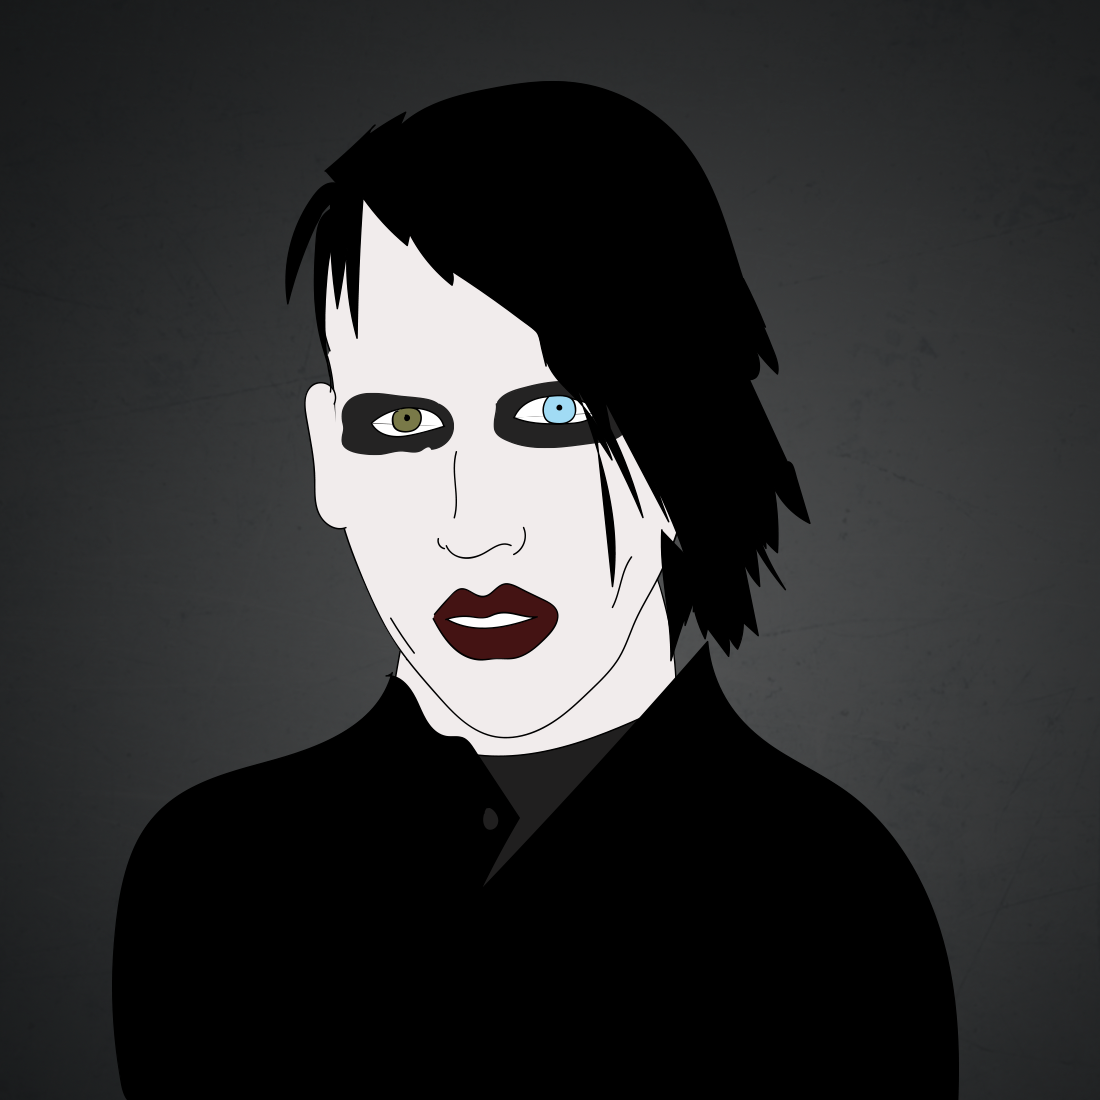 illustration of Marilyn Manson